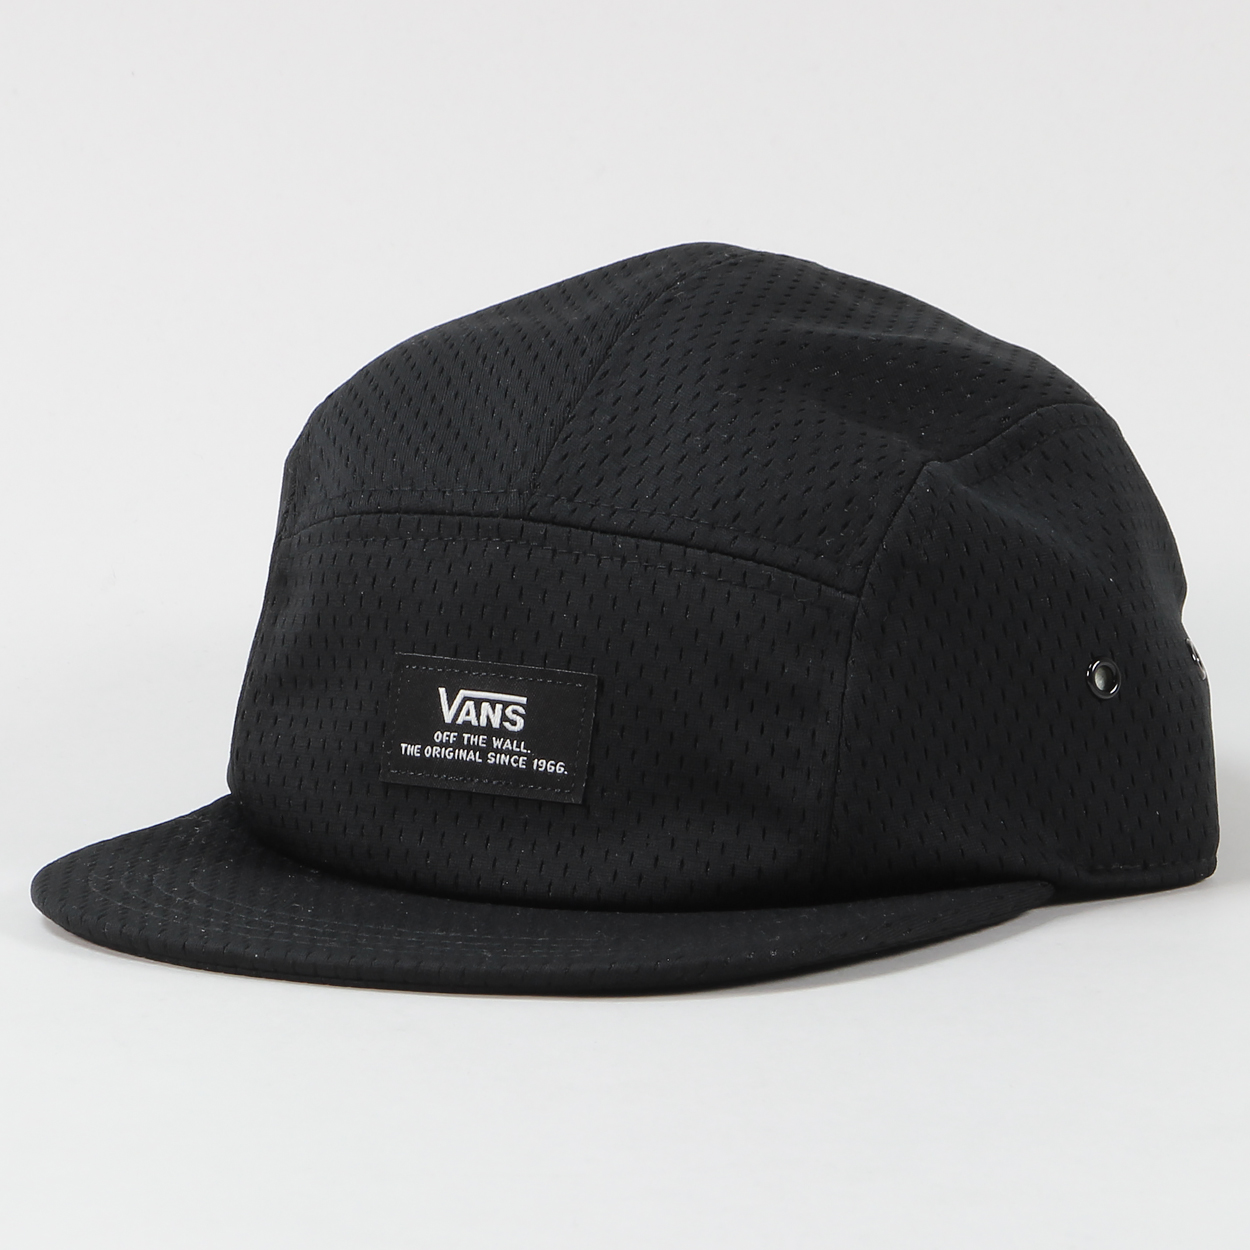 327dd2ce5bb A mesh style five panel cap from the guys at Vans with a one size fits all  adjuster at the back and a flat peak. Great for the board or the beach!